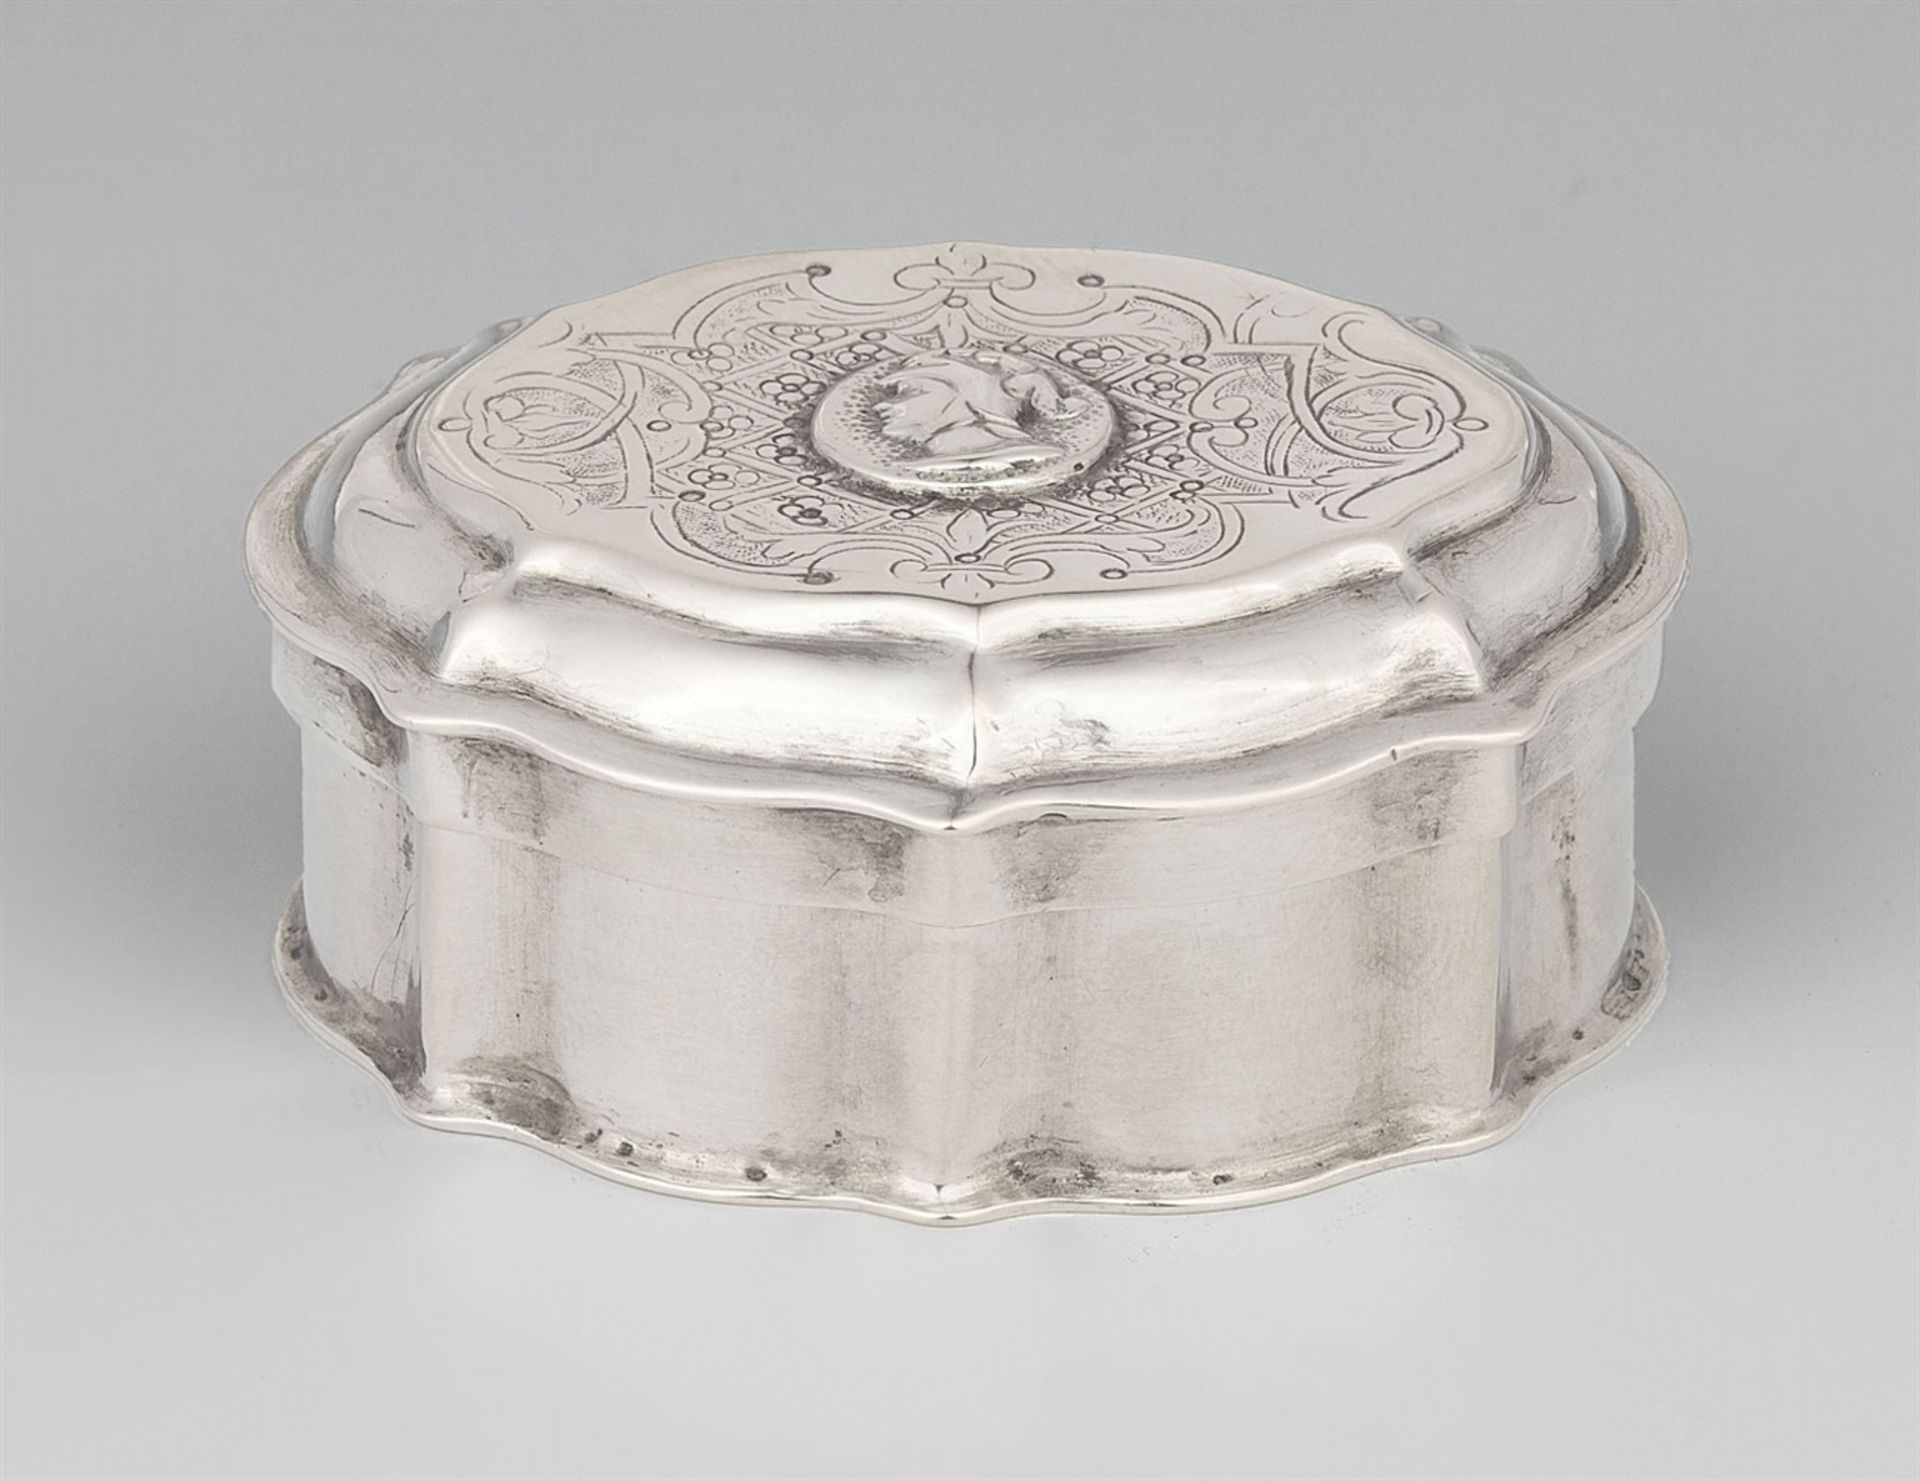 Los 724 - An Augsburg Régence silver boxSilver; gold-plated inside. An oval box containing two separate